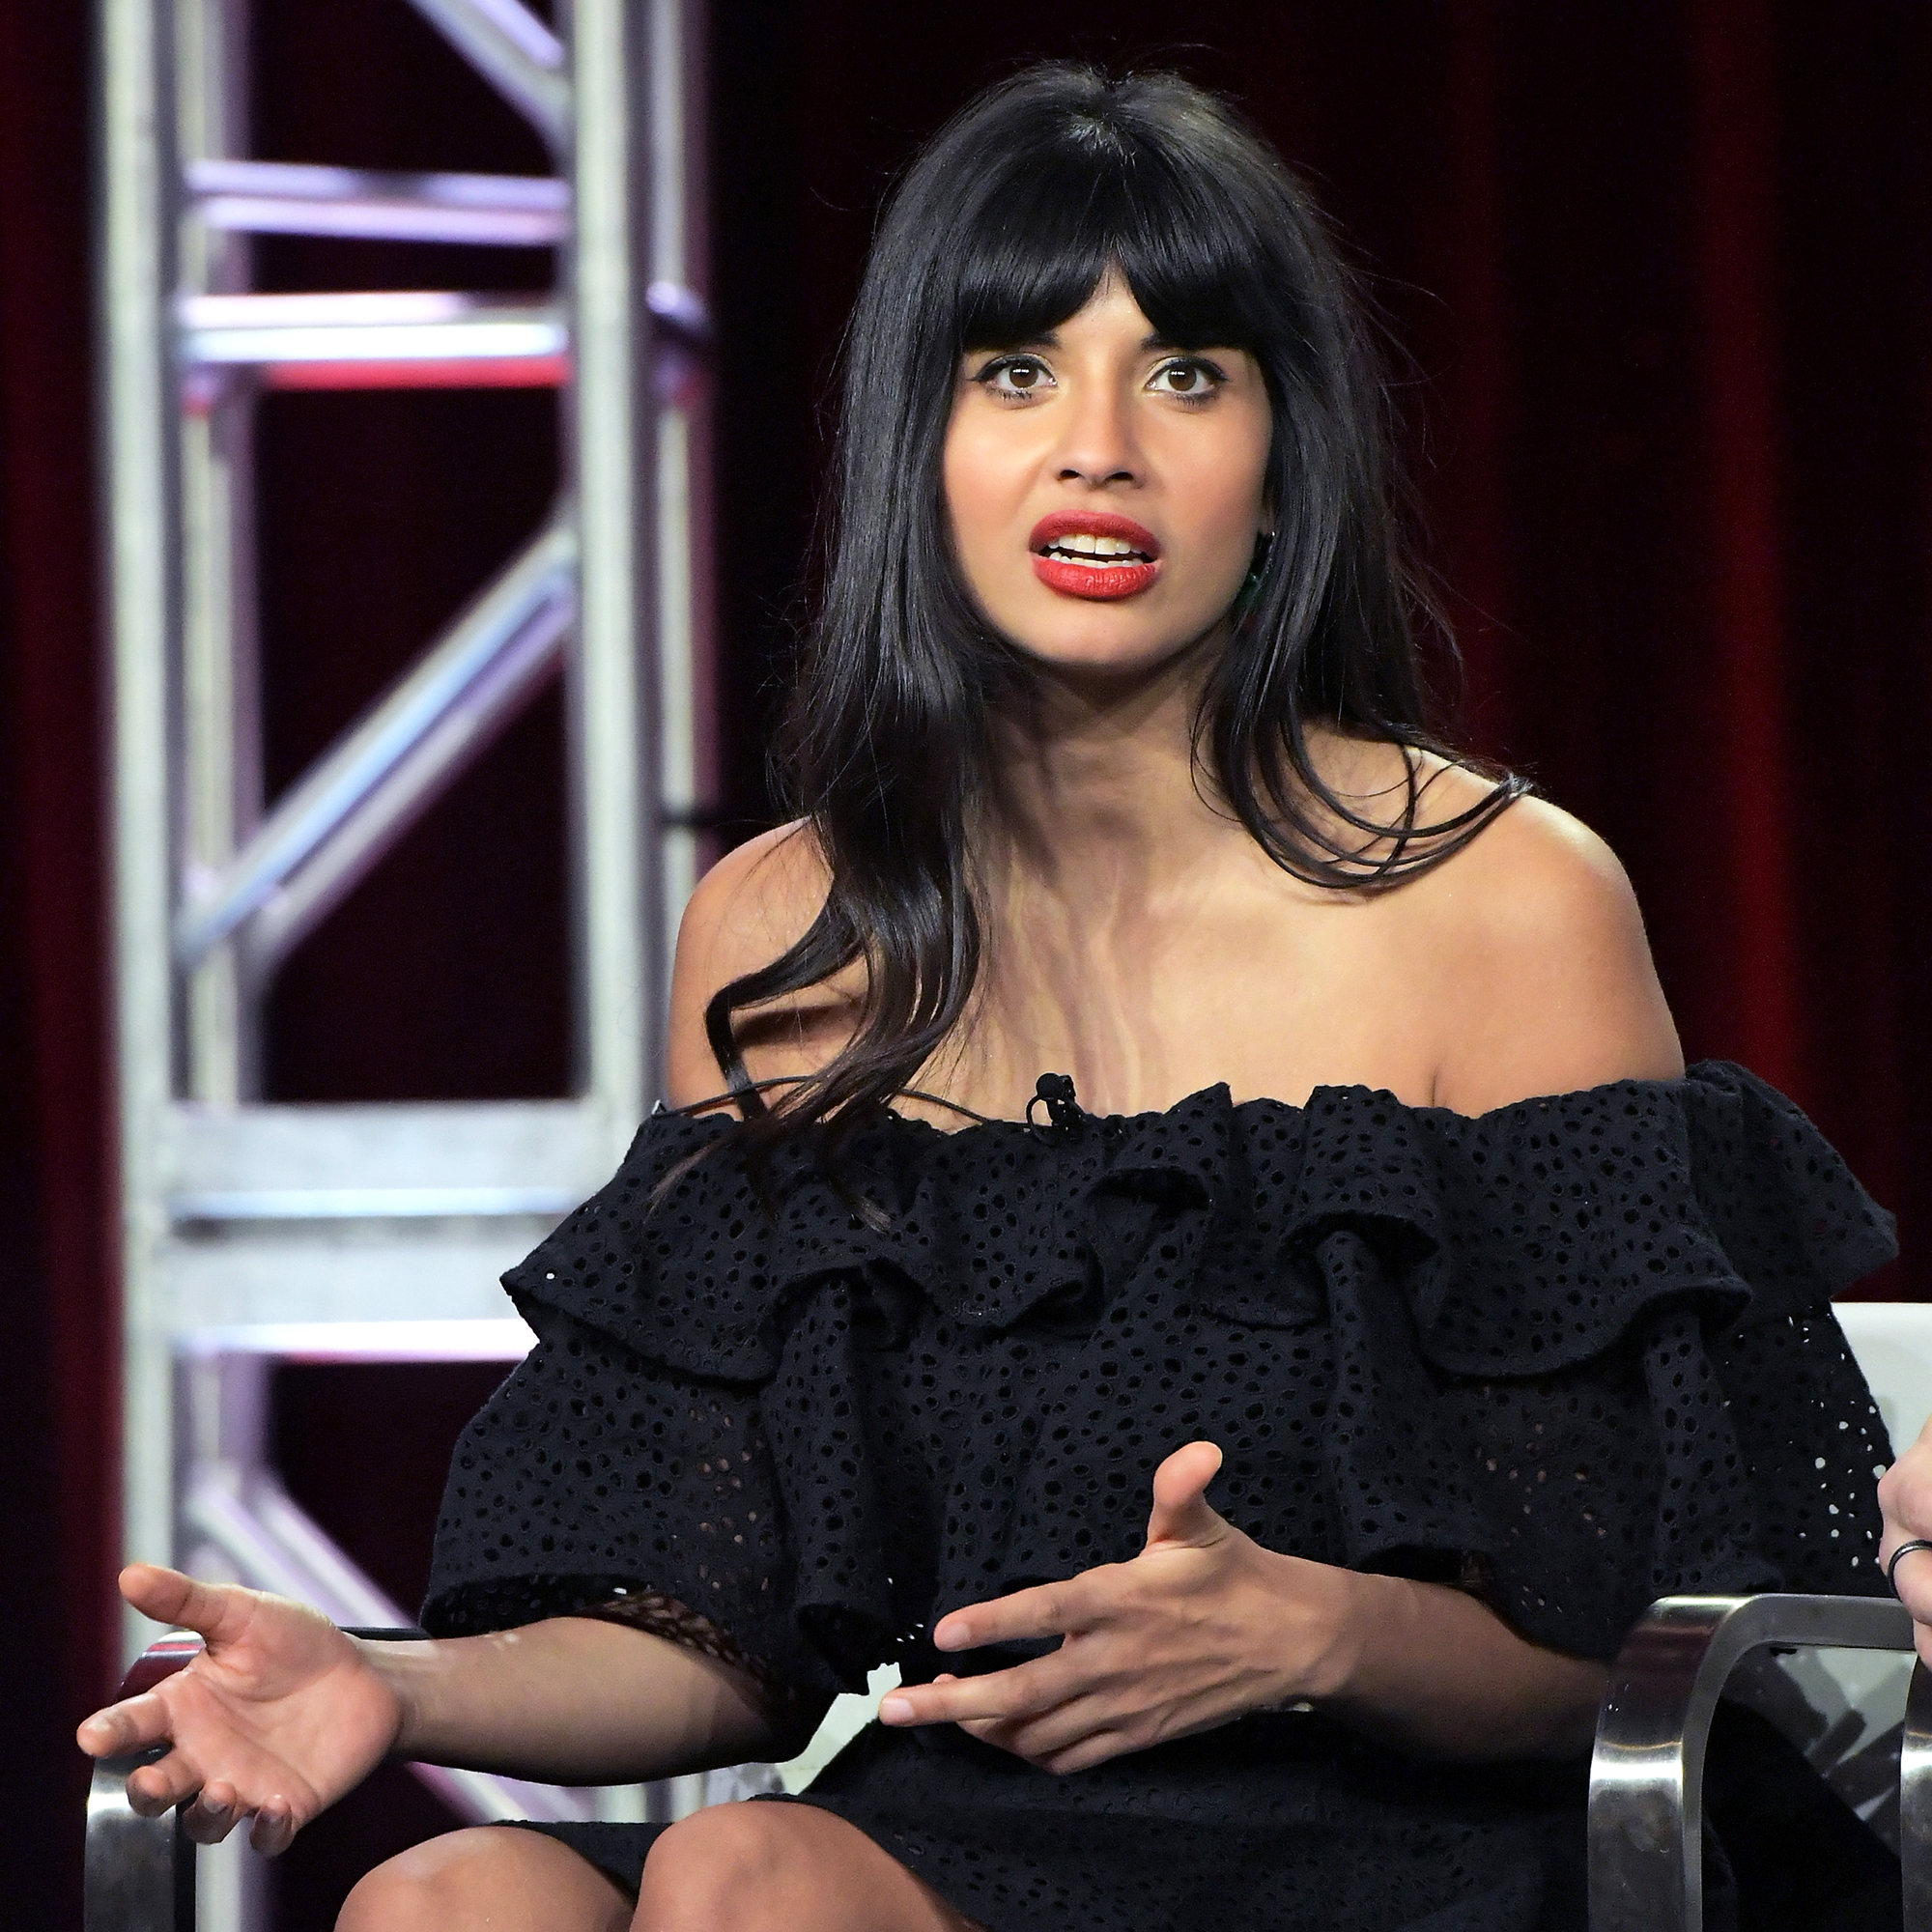 Everything Jameela Jamil Has Ever Said About Body-Shaming Culture - In 2015, Emile Hirsch pleaded guilty to misdemeanor charges of assault after he was accused of choking film executive Daniele Bernfeld . When director Quentin Tarantino cast Hirsch in Once Upon a Time in Hollywood in June 2018, Jamile spoke out.